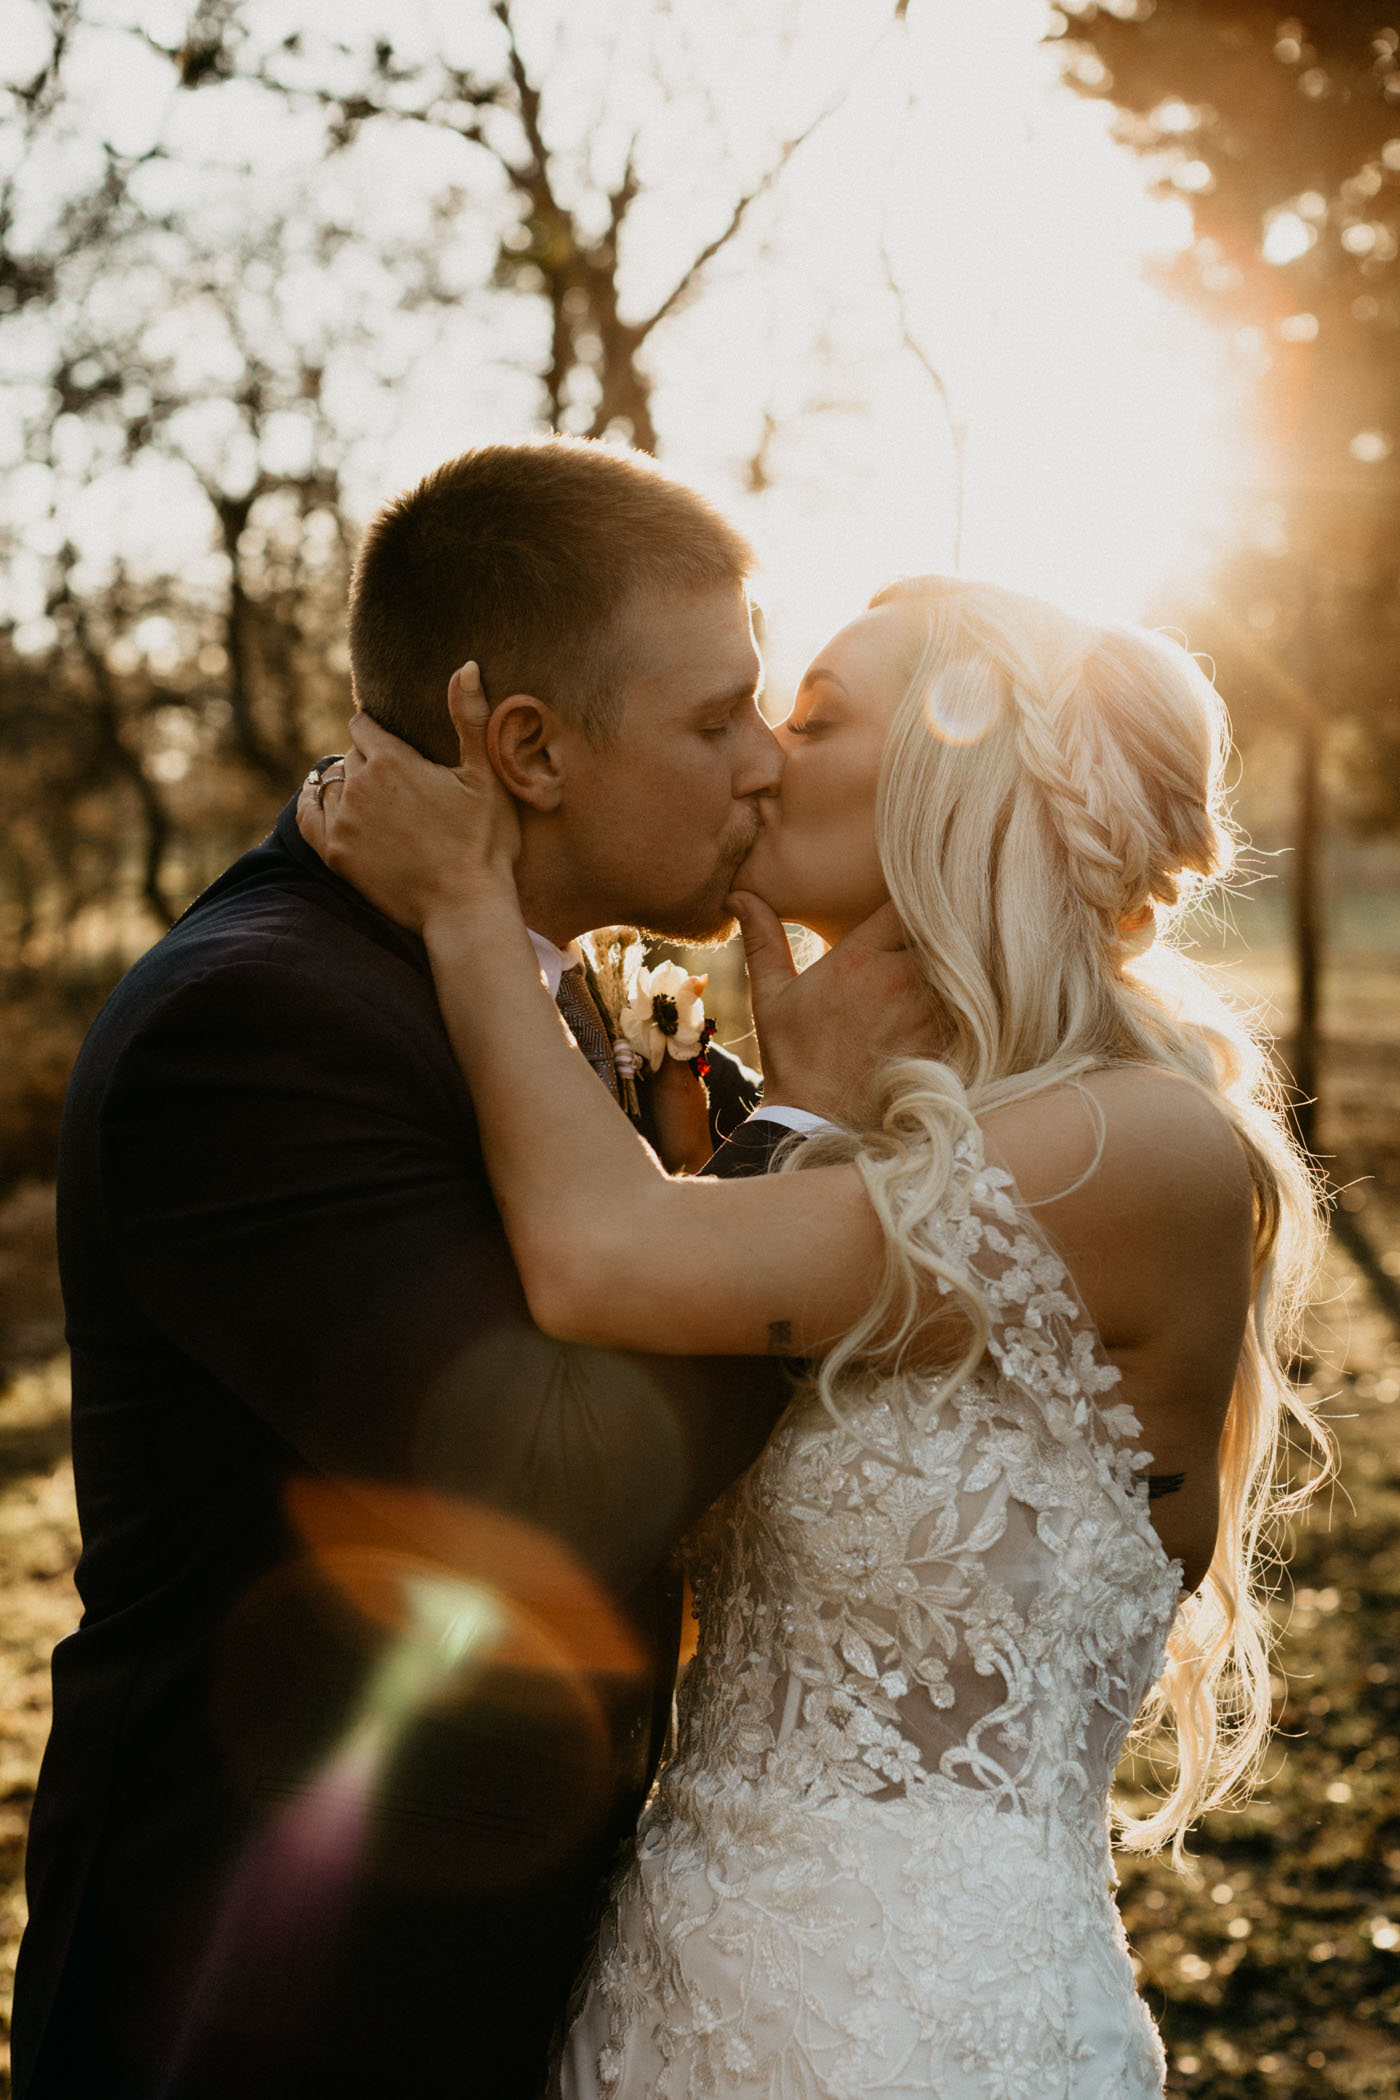 golden hour light leak photo of bride and groom after winter wedding ceremony